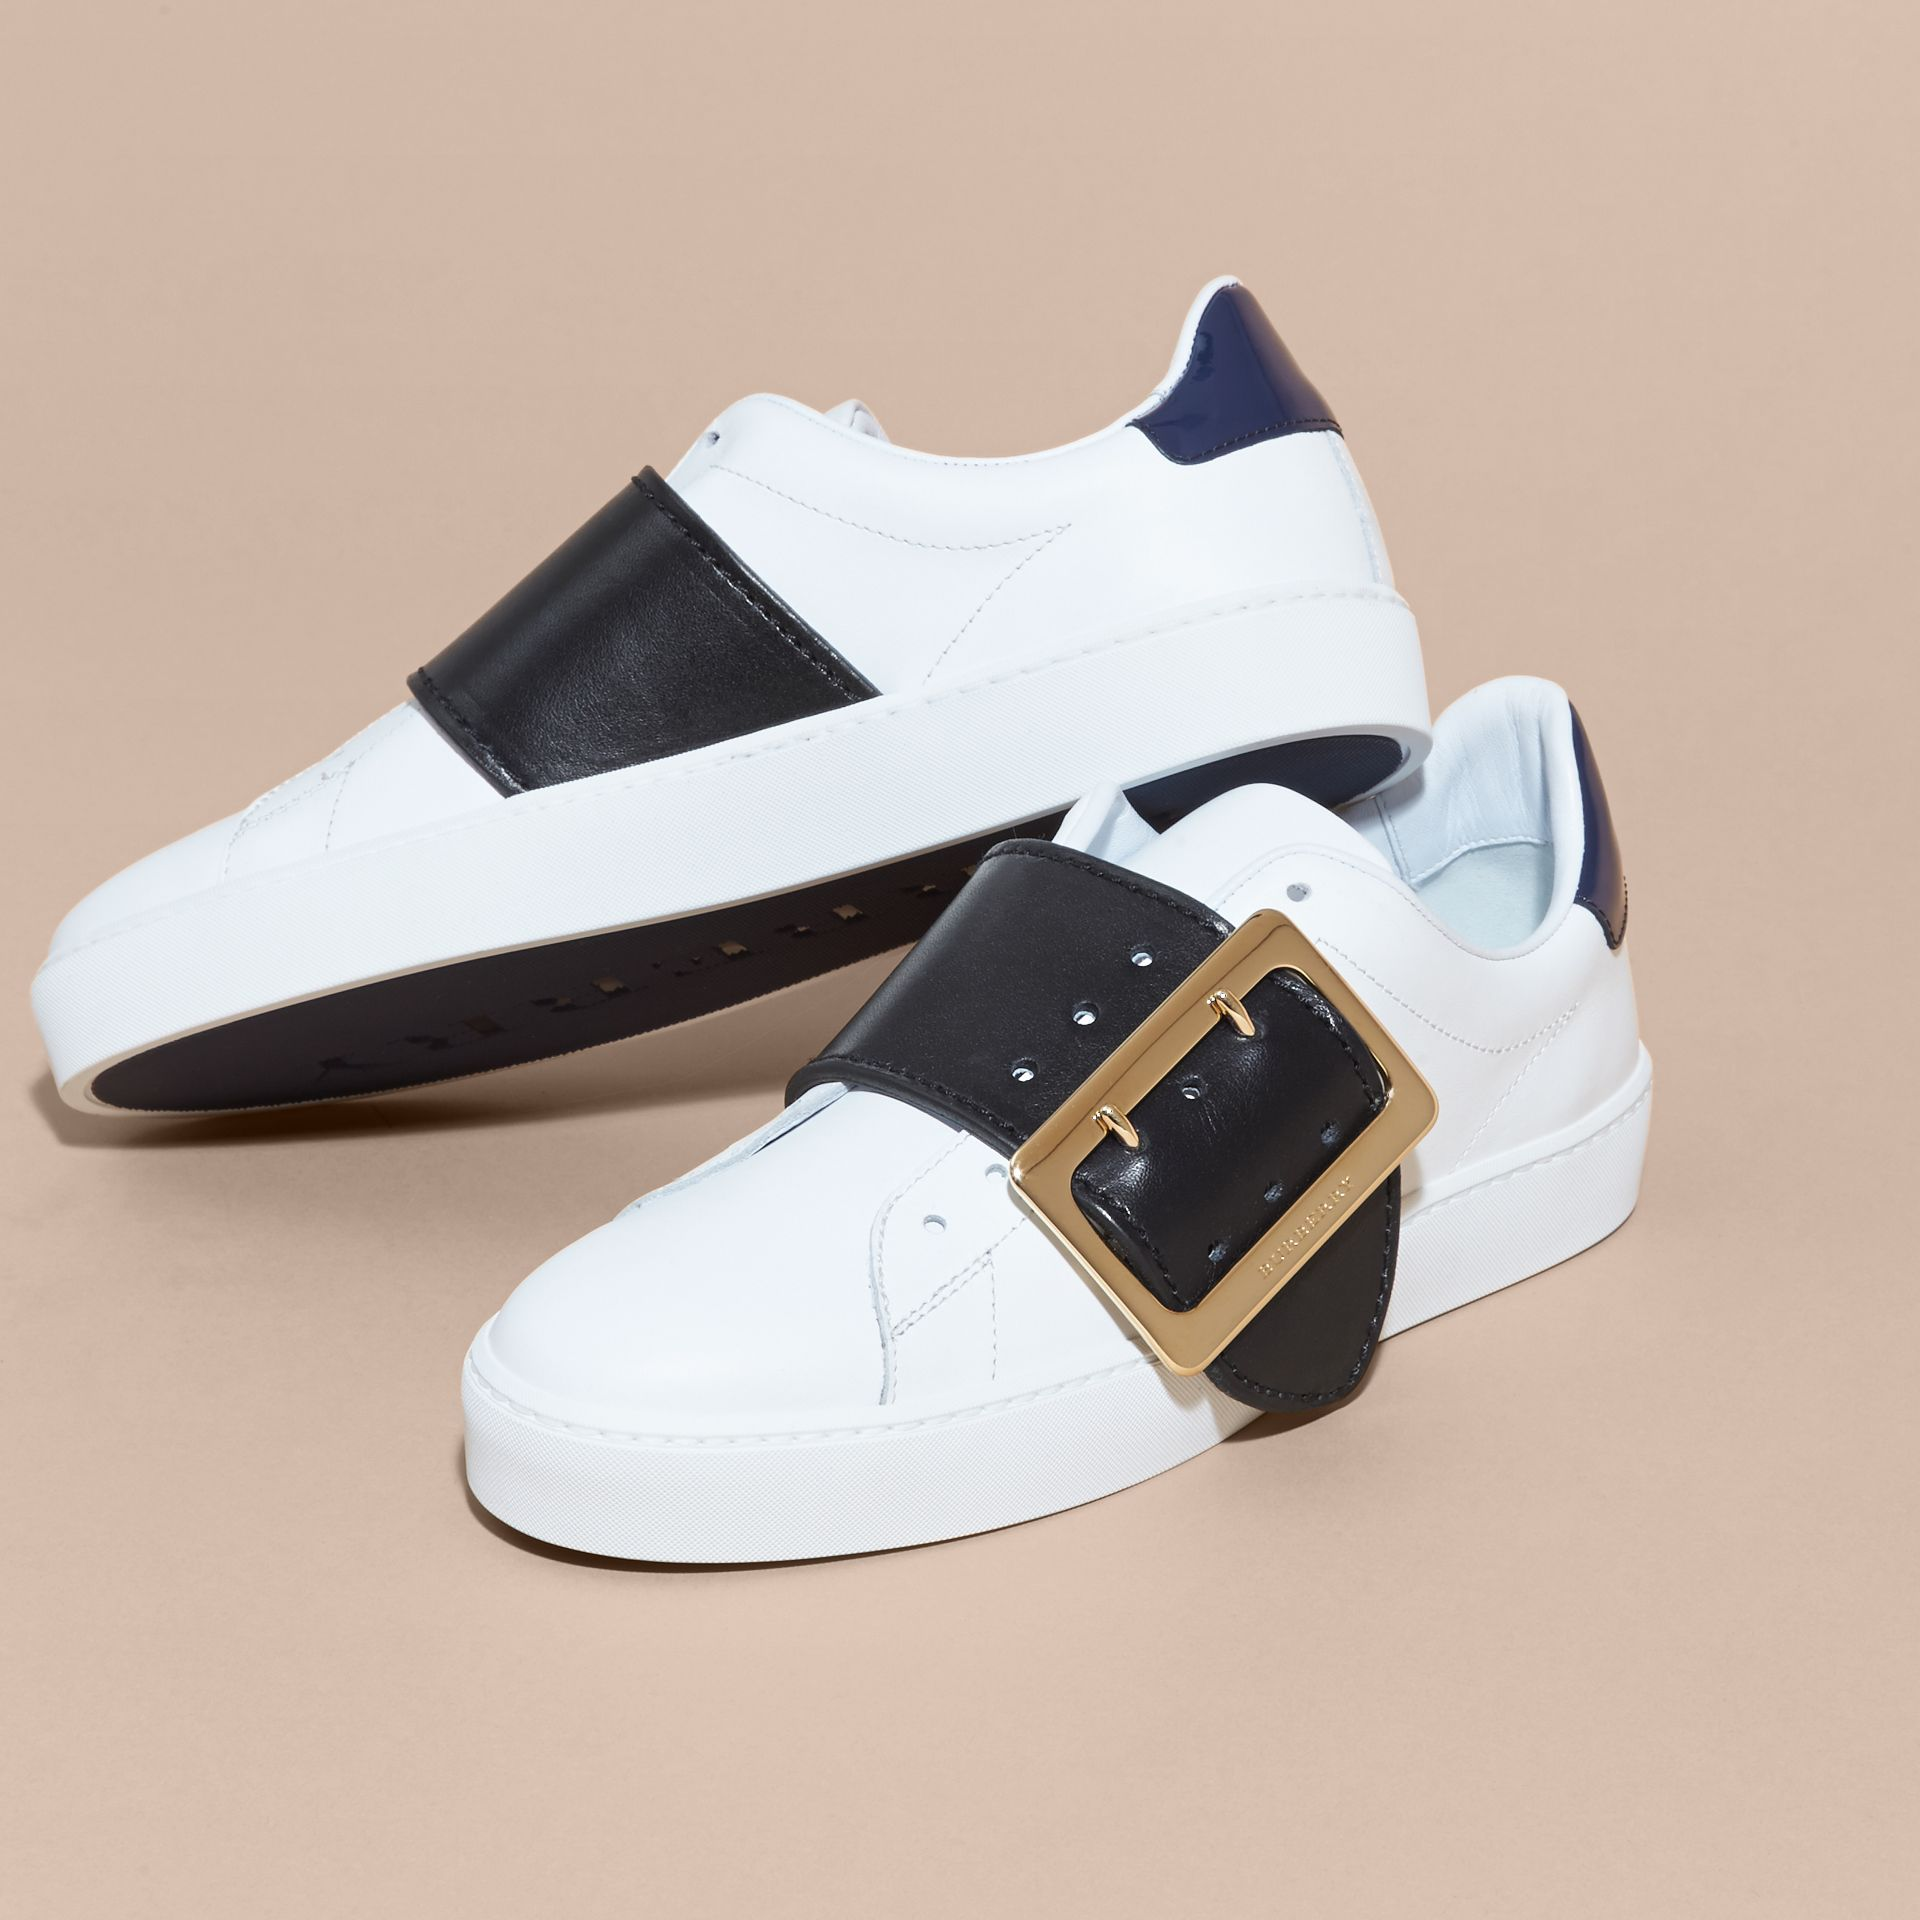 Buckle Detail Leather Trainers Optic White/navy - gallery image 3